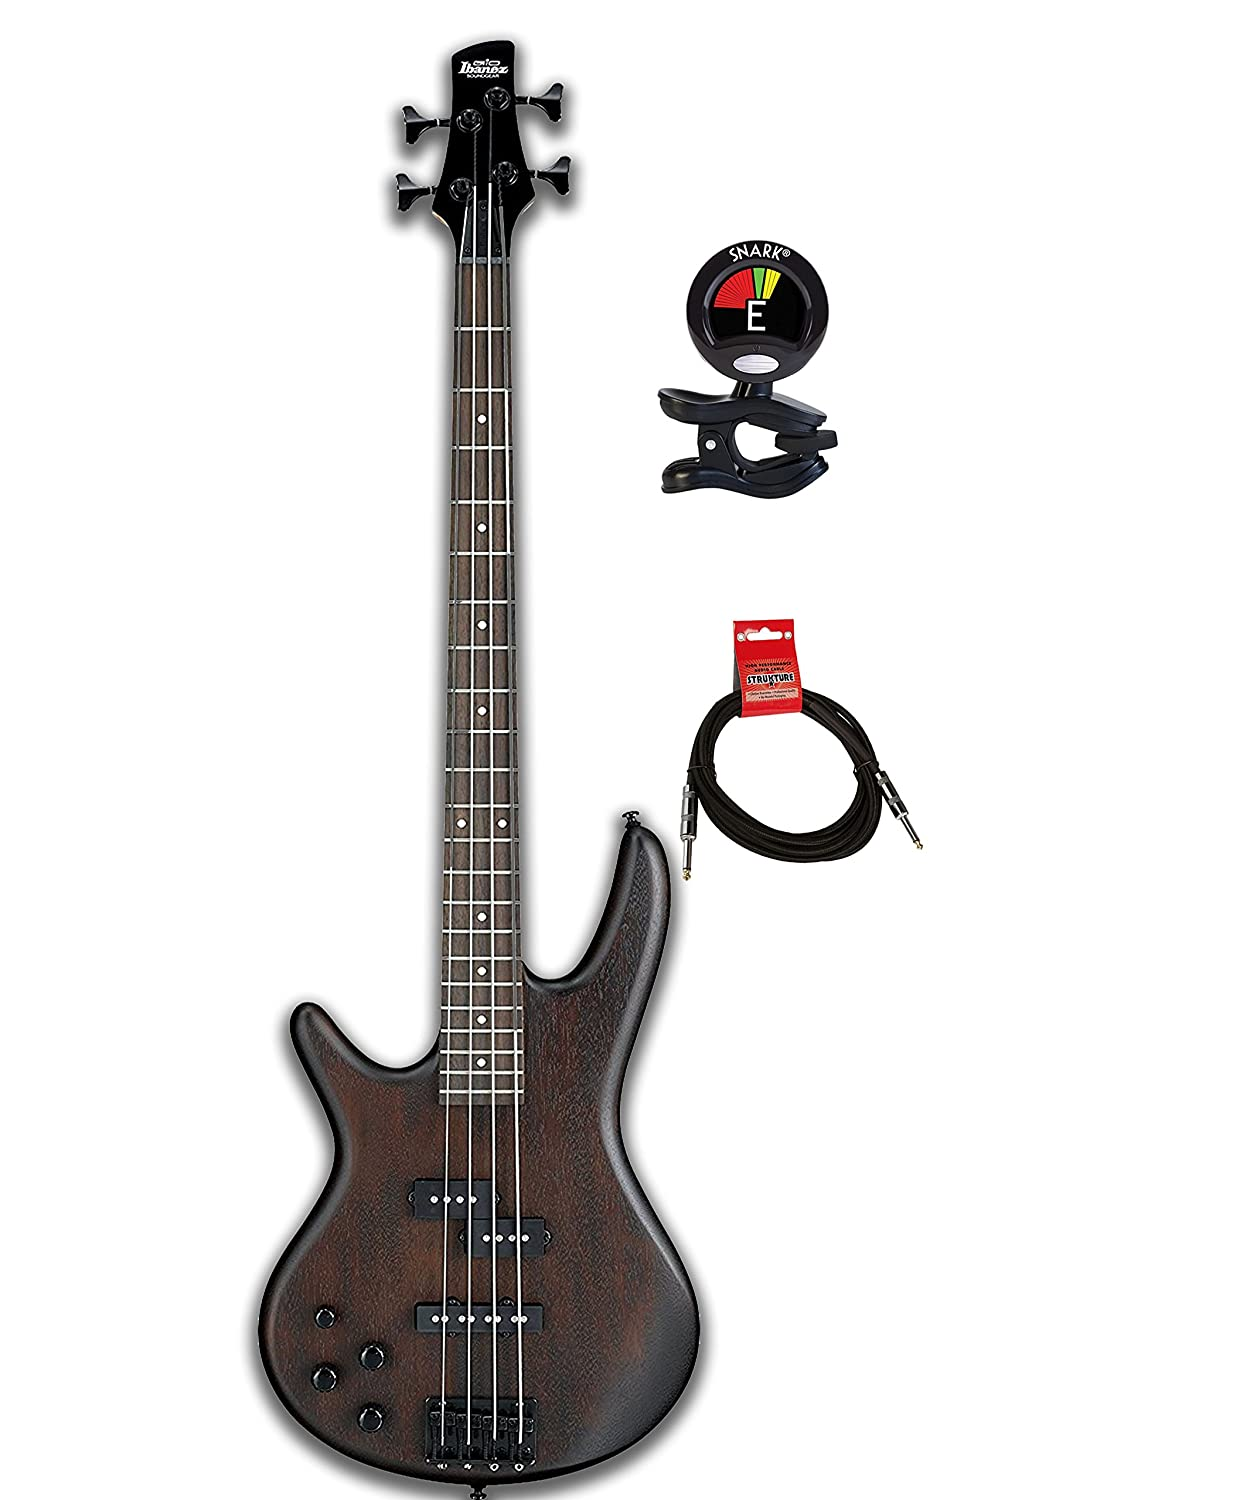 ibanez gio gsr200 4 string electric bass guitar bundle with guitar tuner and instrument cable. Black Bedroom Furniture Sets. Home Design Ideas